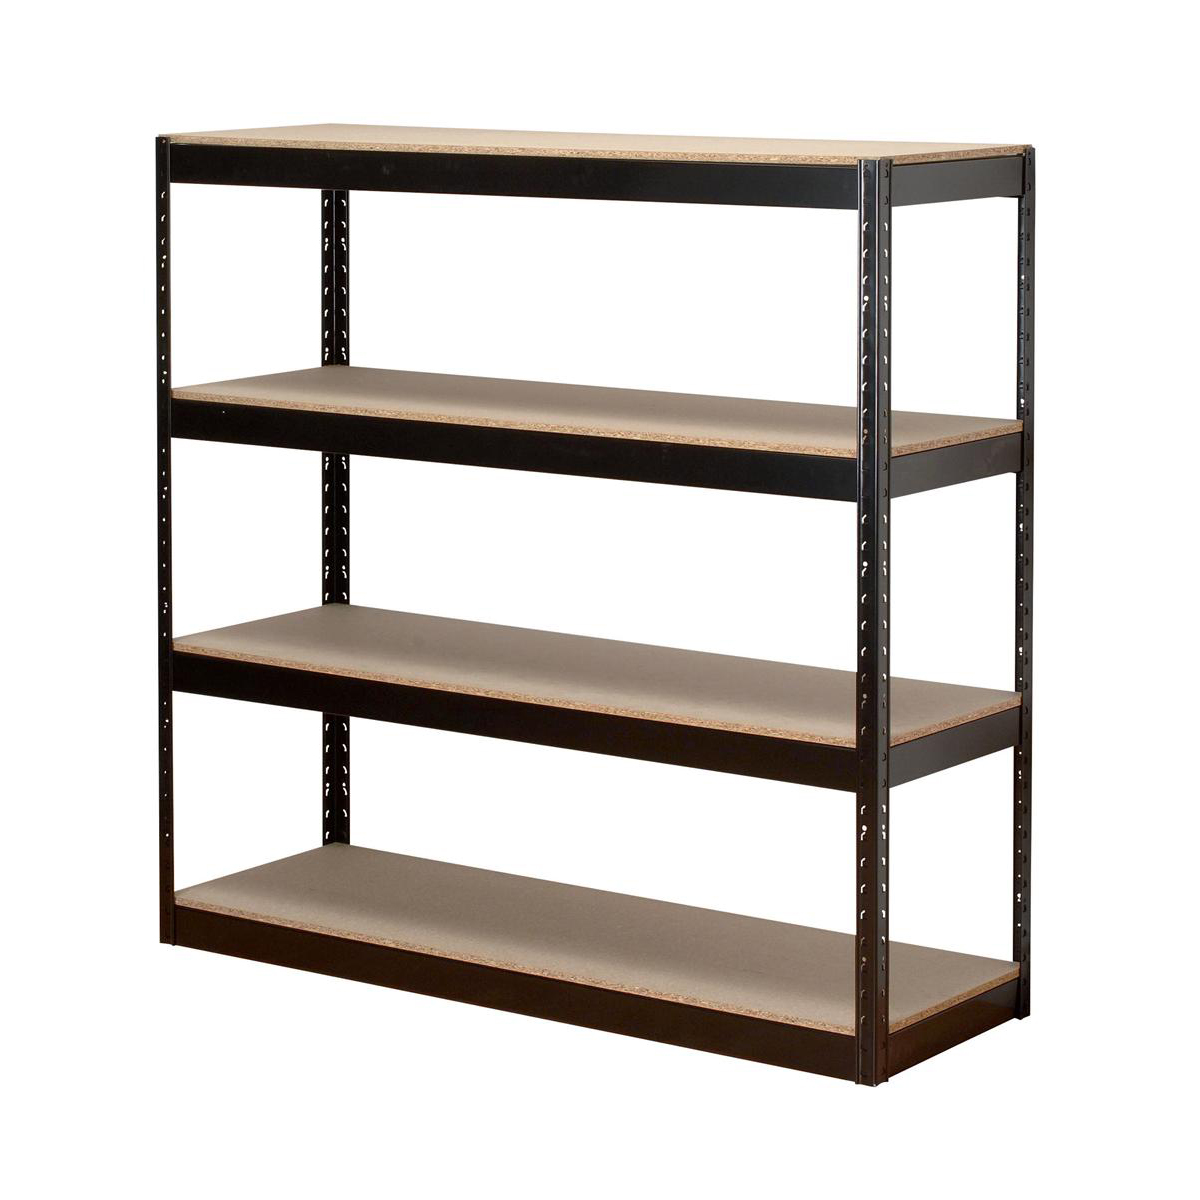 Over 1200mm High Trexus Archive Shelving Unit Heavy-duty Boltless 4 Shelves Capacity 4x 100kg W1320xD450xH1315mm Black